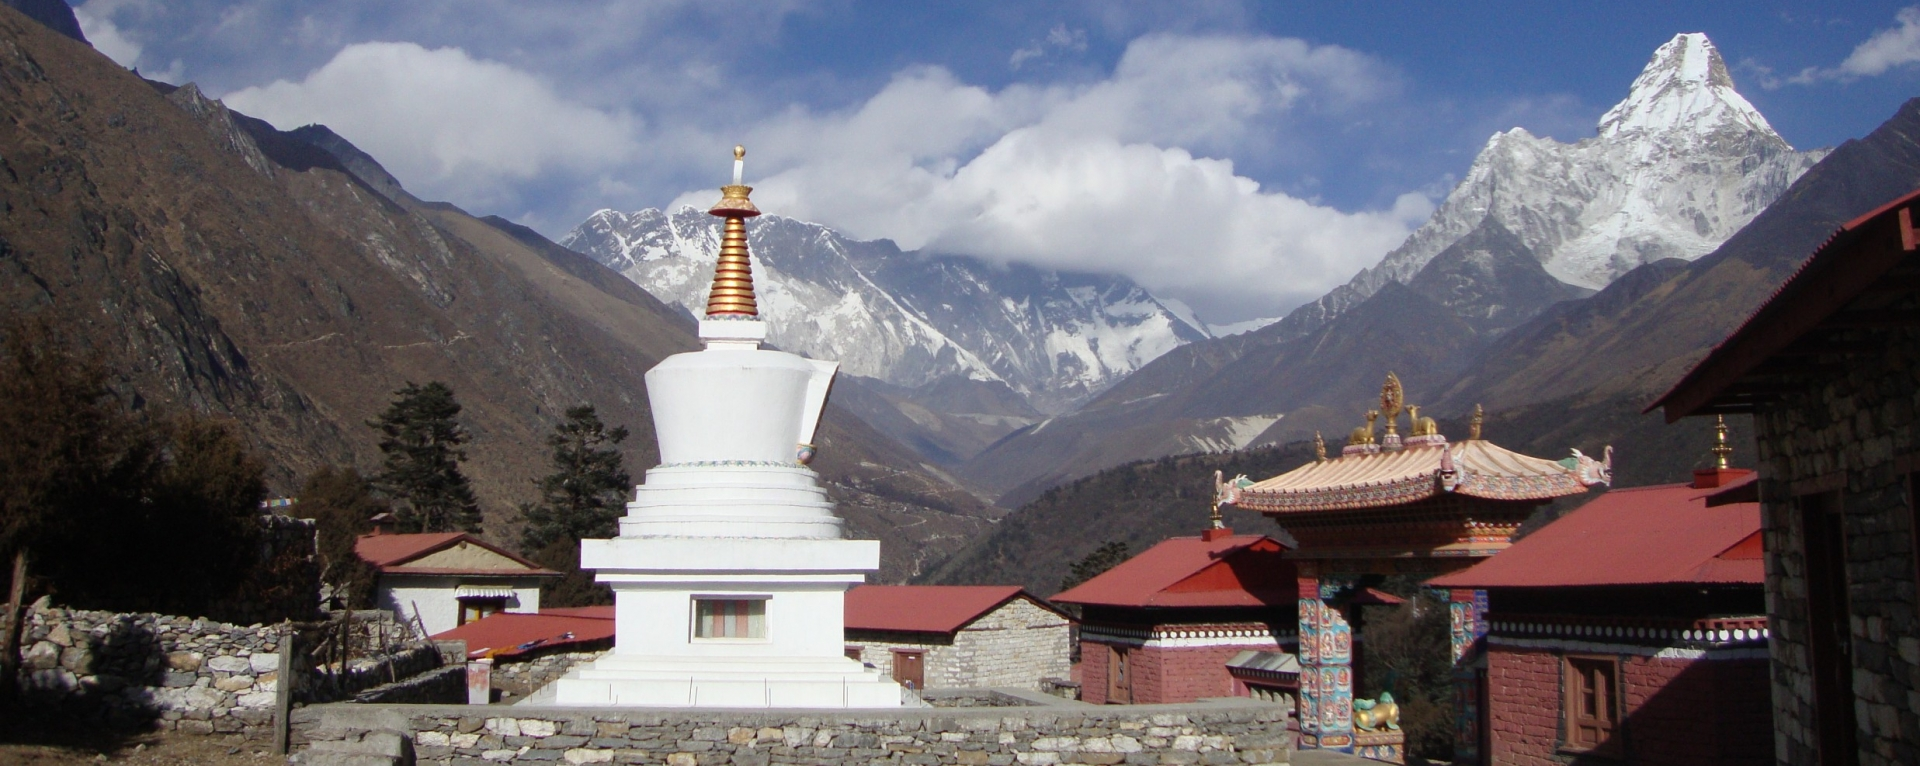 The monastery and mountain views from Tengboche, Khumbu, Nepal